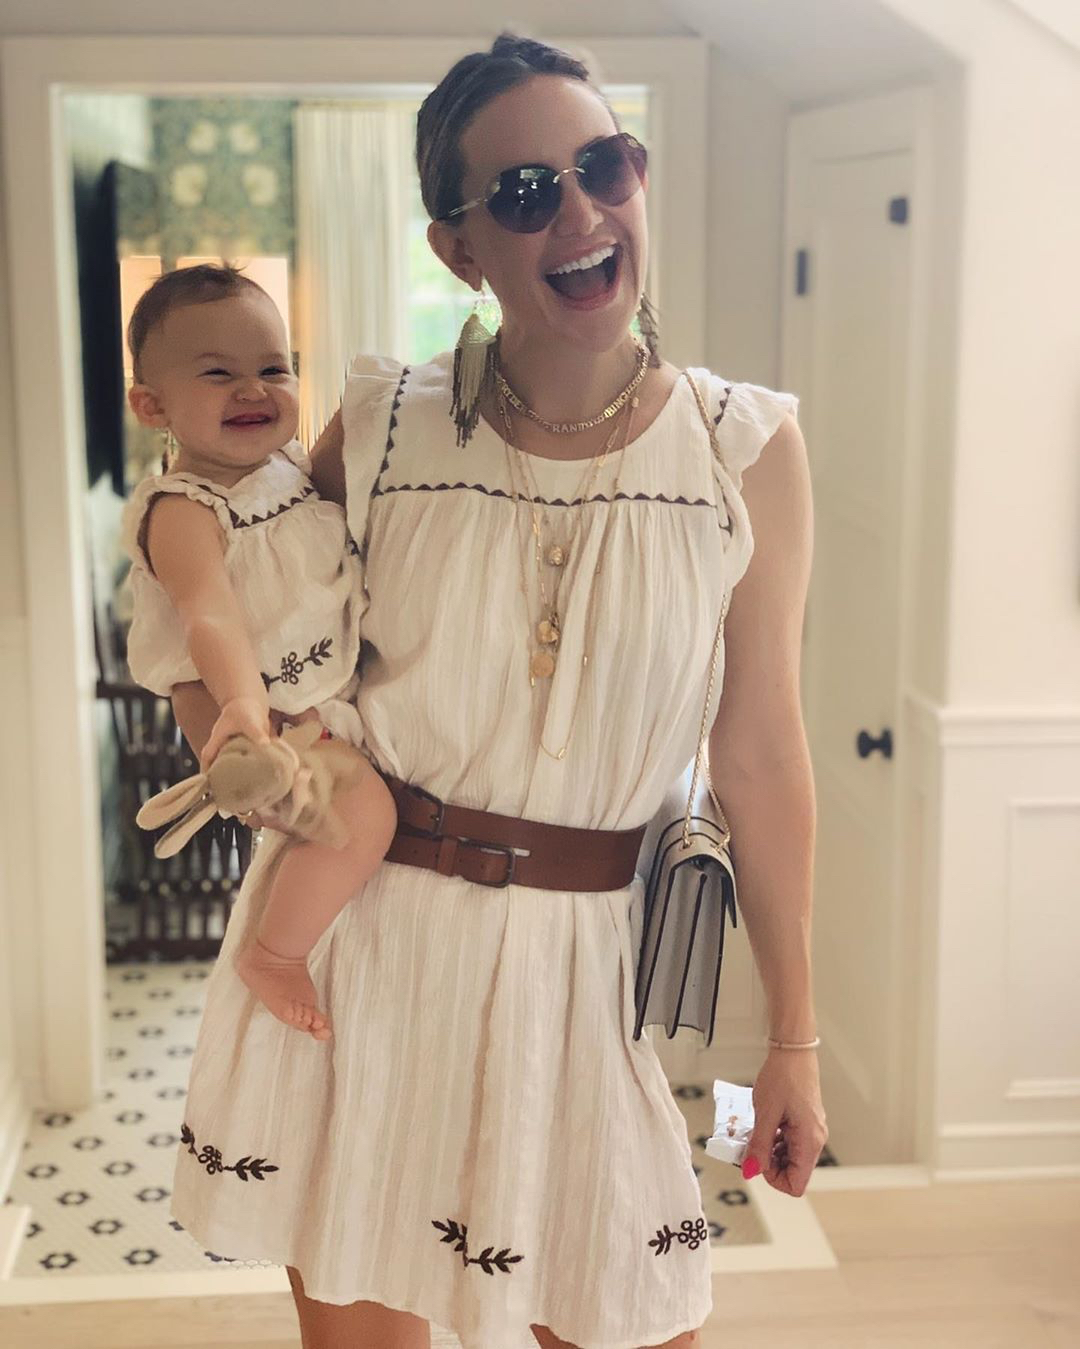 Kate Hudson's Daughter Rani Rose Just Took Her First Steps While Wearing a Kurt Russell Onesie